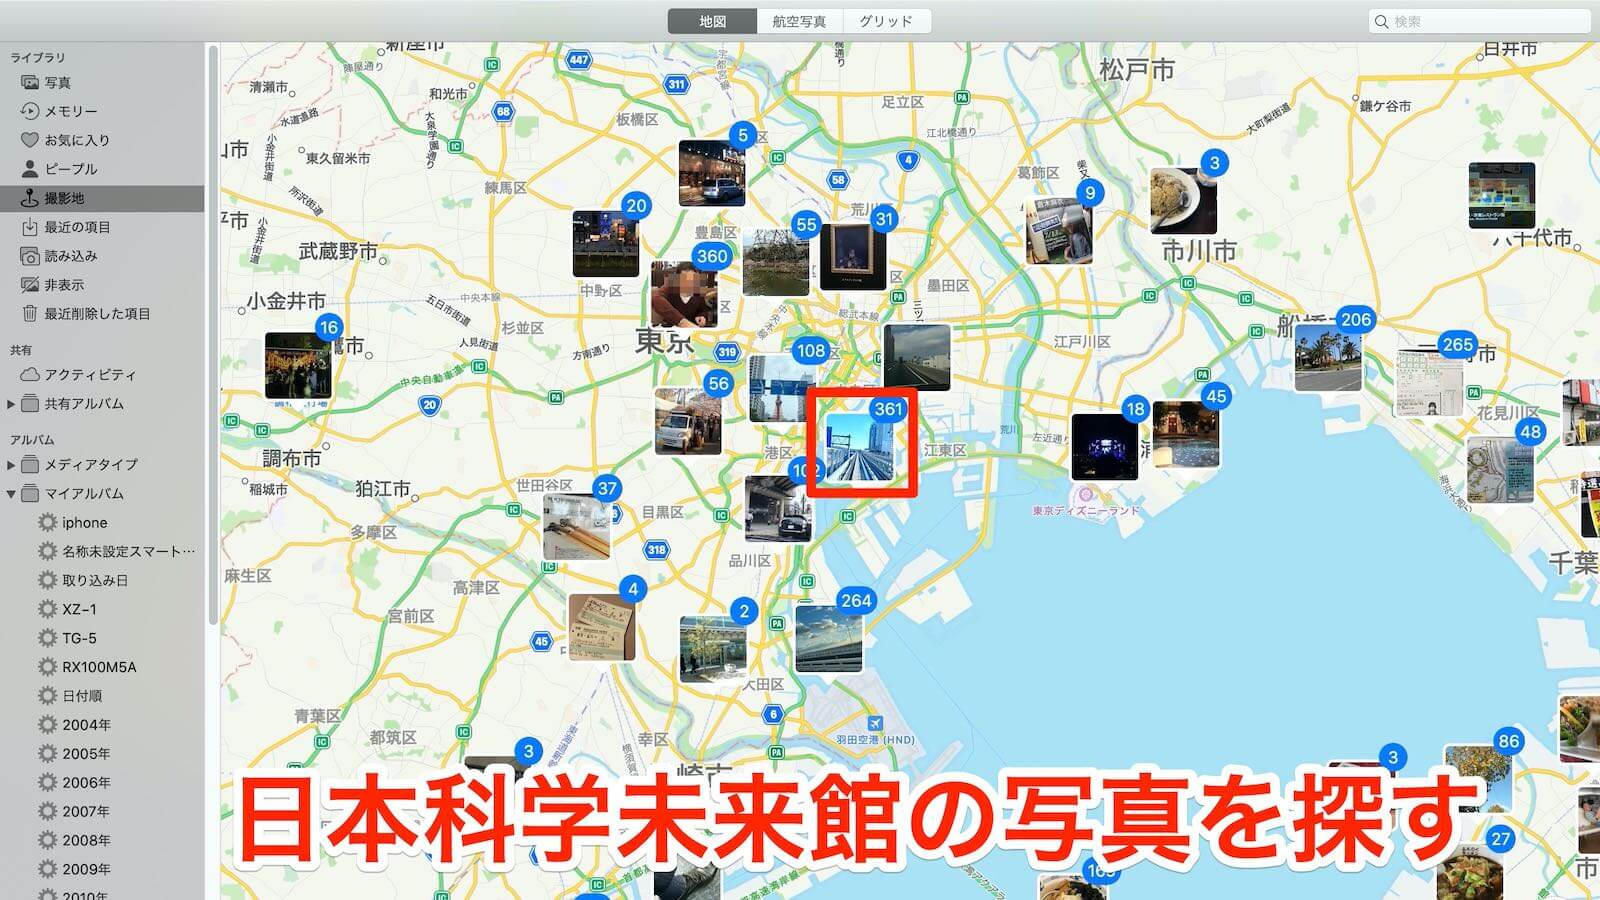 0221 Search images captured on your iPhone or Mac in one shot 05